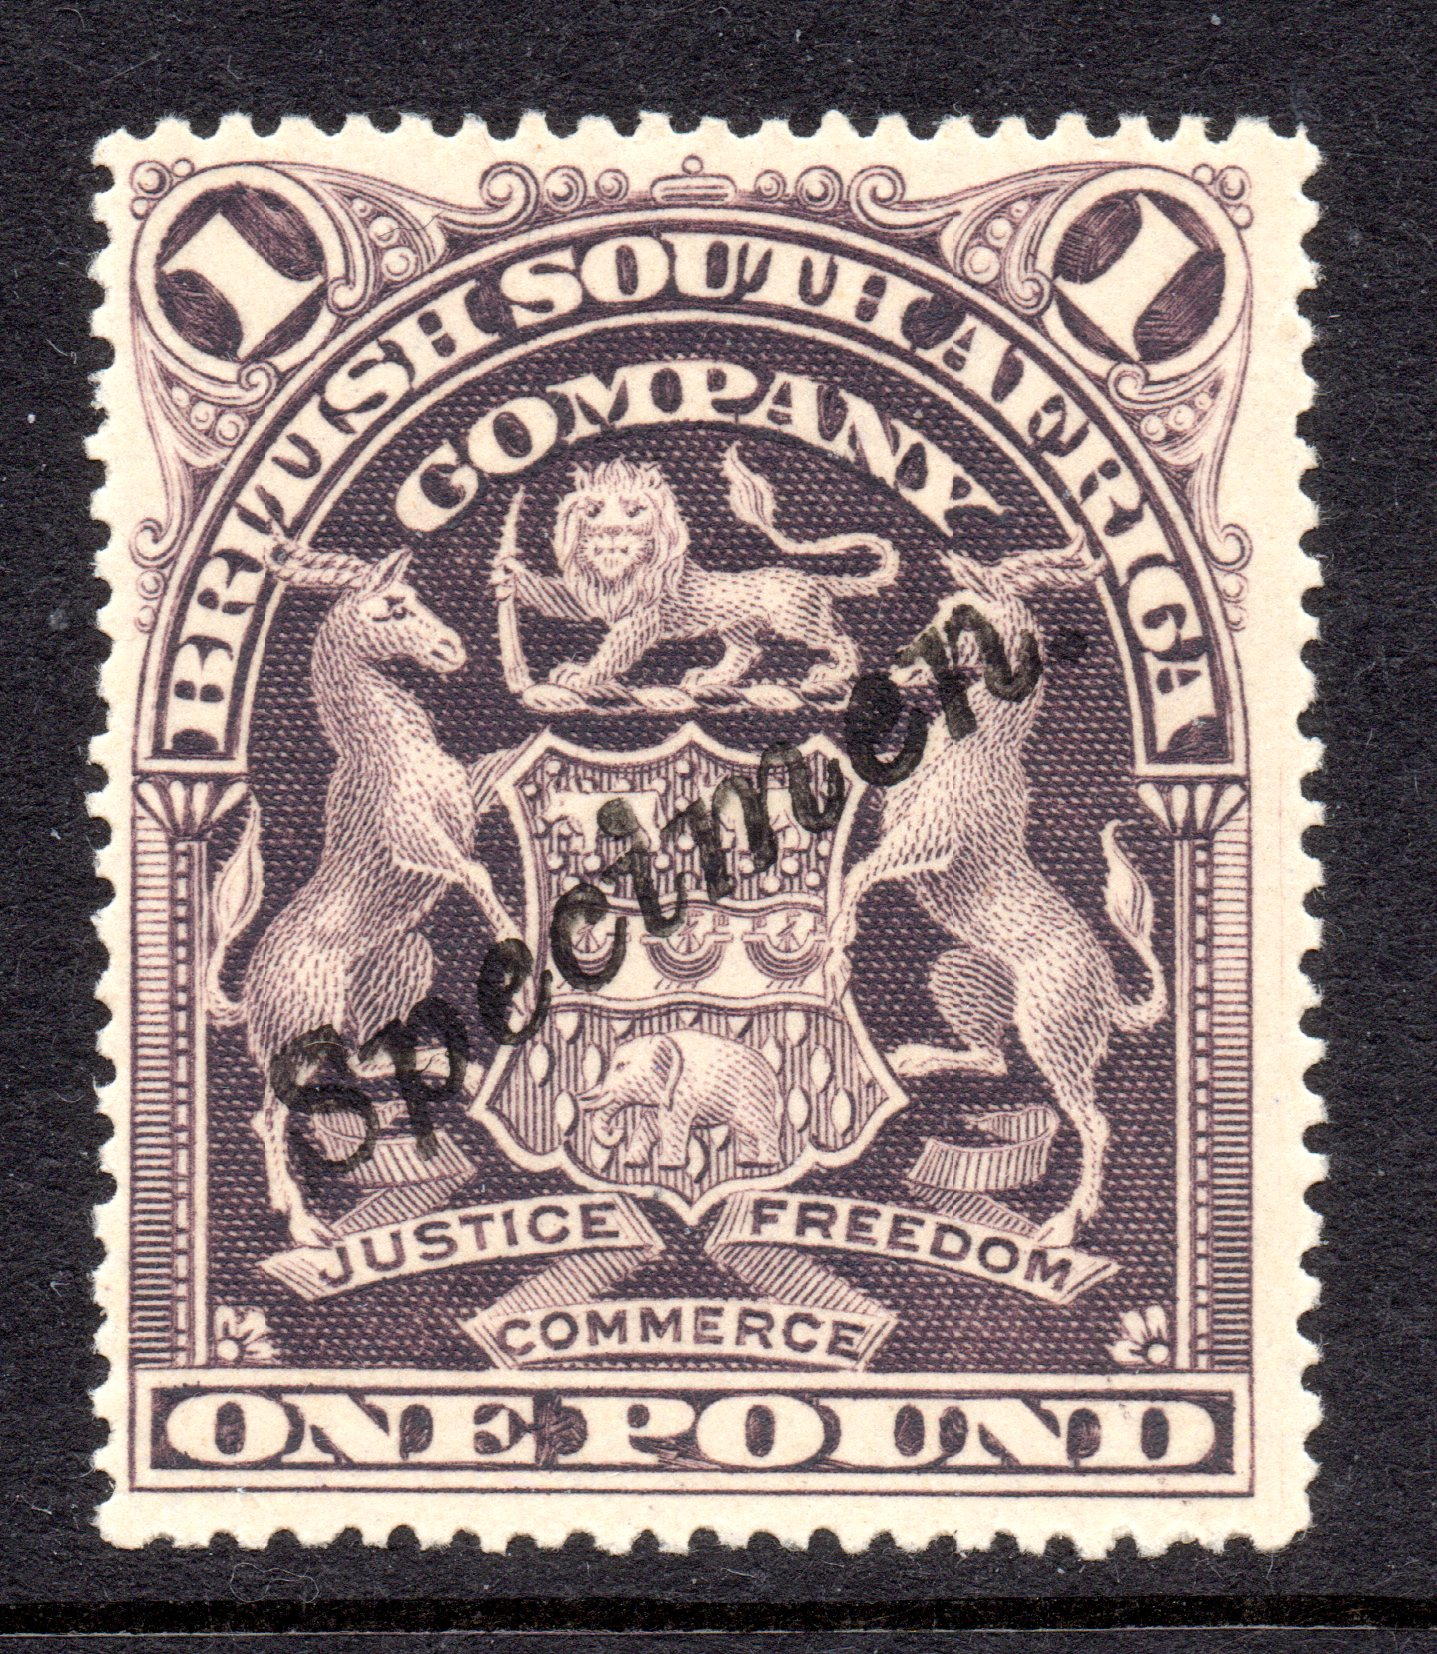 British South Africa Company 1901 £1 Greyish Red-purple SPECIMEN - SUPERB QUALITY STAMP